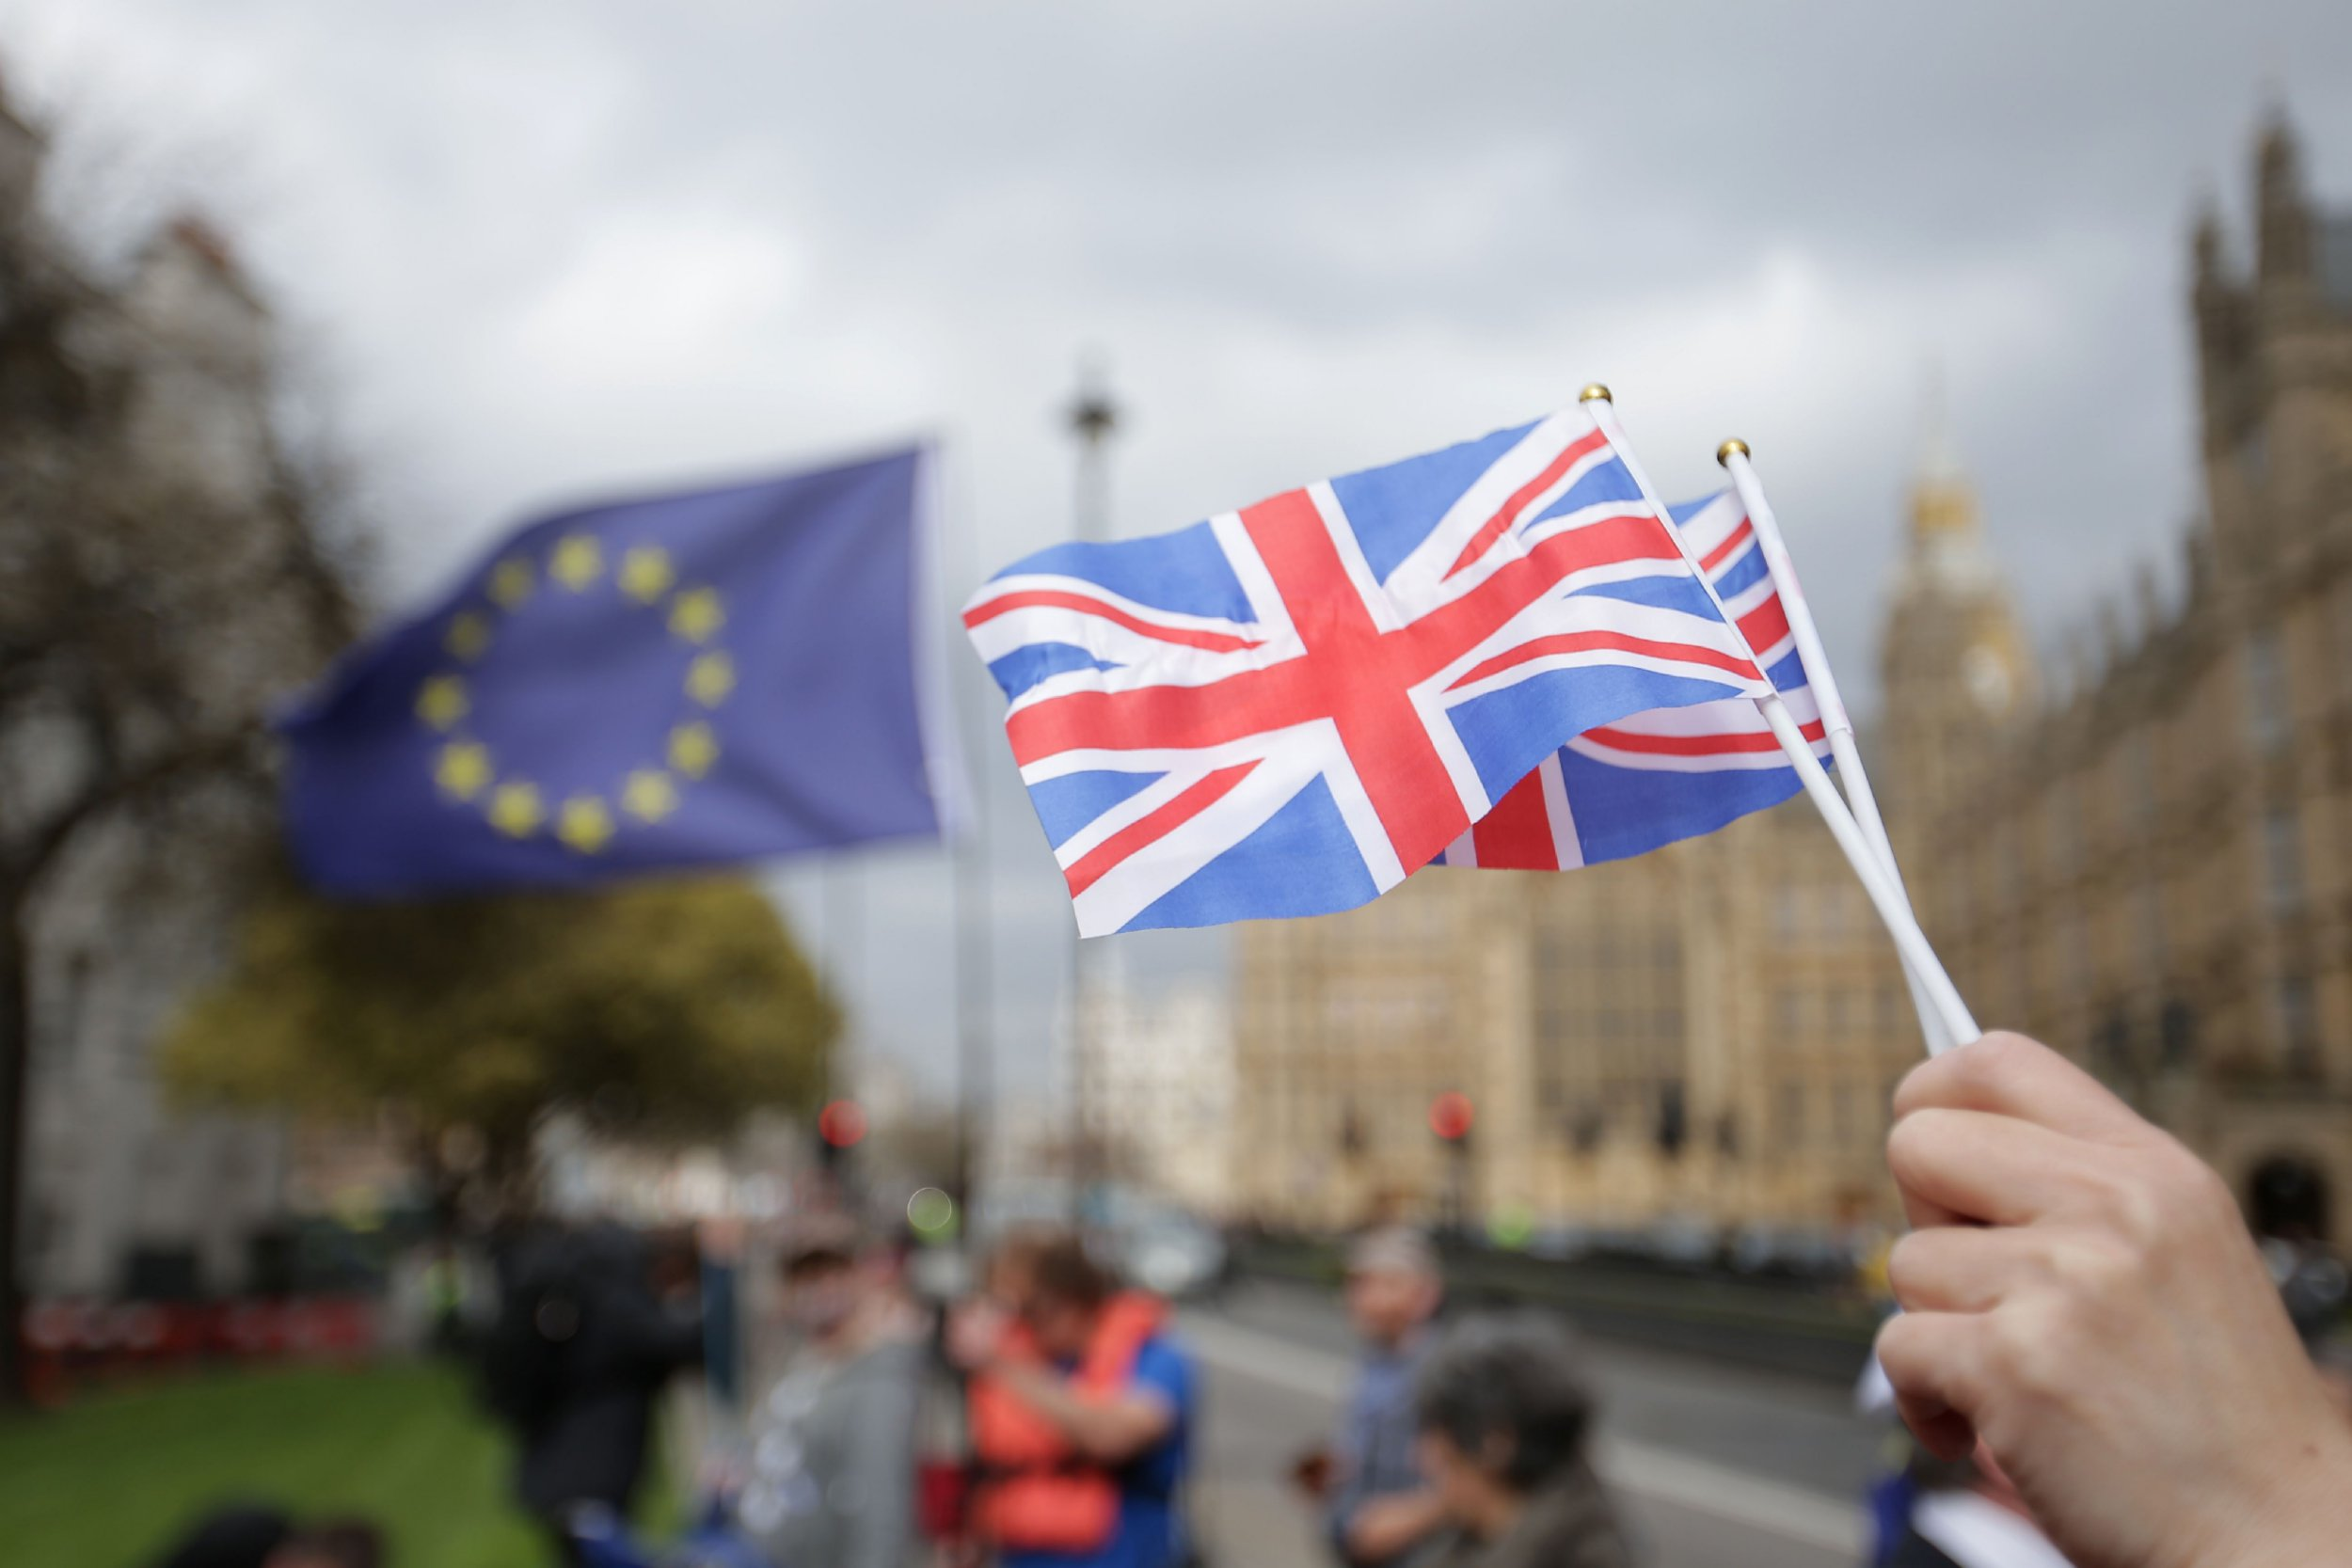 A person holds Union Flags near the Houses of Parliament in London, on March 29, 2017, after British Prime Minister Theresa May announced to the House of Commons that Article 50 of the Lisbon Treaty had been triggered, formally starting Britain's withdrawl from the European Union (EU). Britain formally launched the process for leaving the European Union on March 29, a historic move that has split the country and thrown into question the future of the European project. / AFP PHOTO / Daniel LEAL-OLIVAS (Photo credit should read DANIEL LEAL-OLIVAS/AFP/Getty Images)